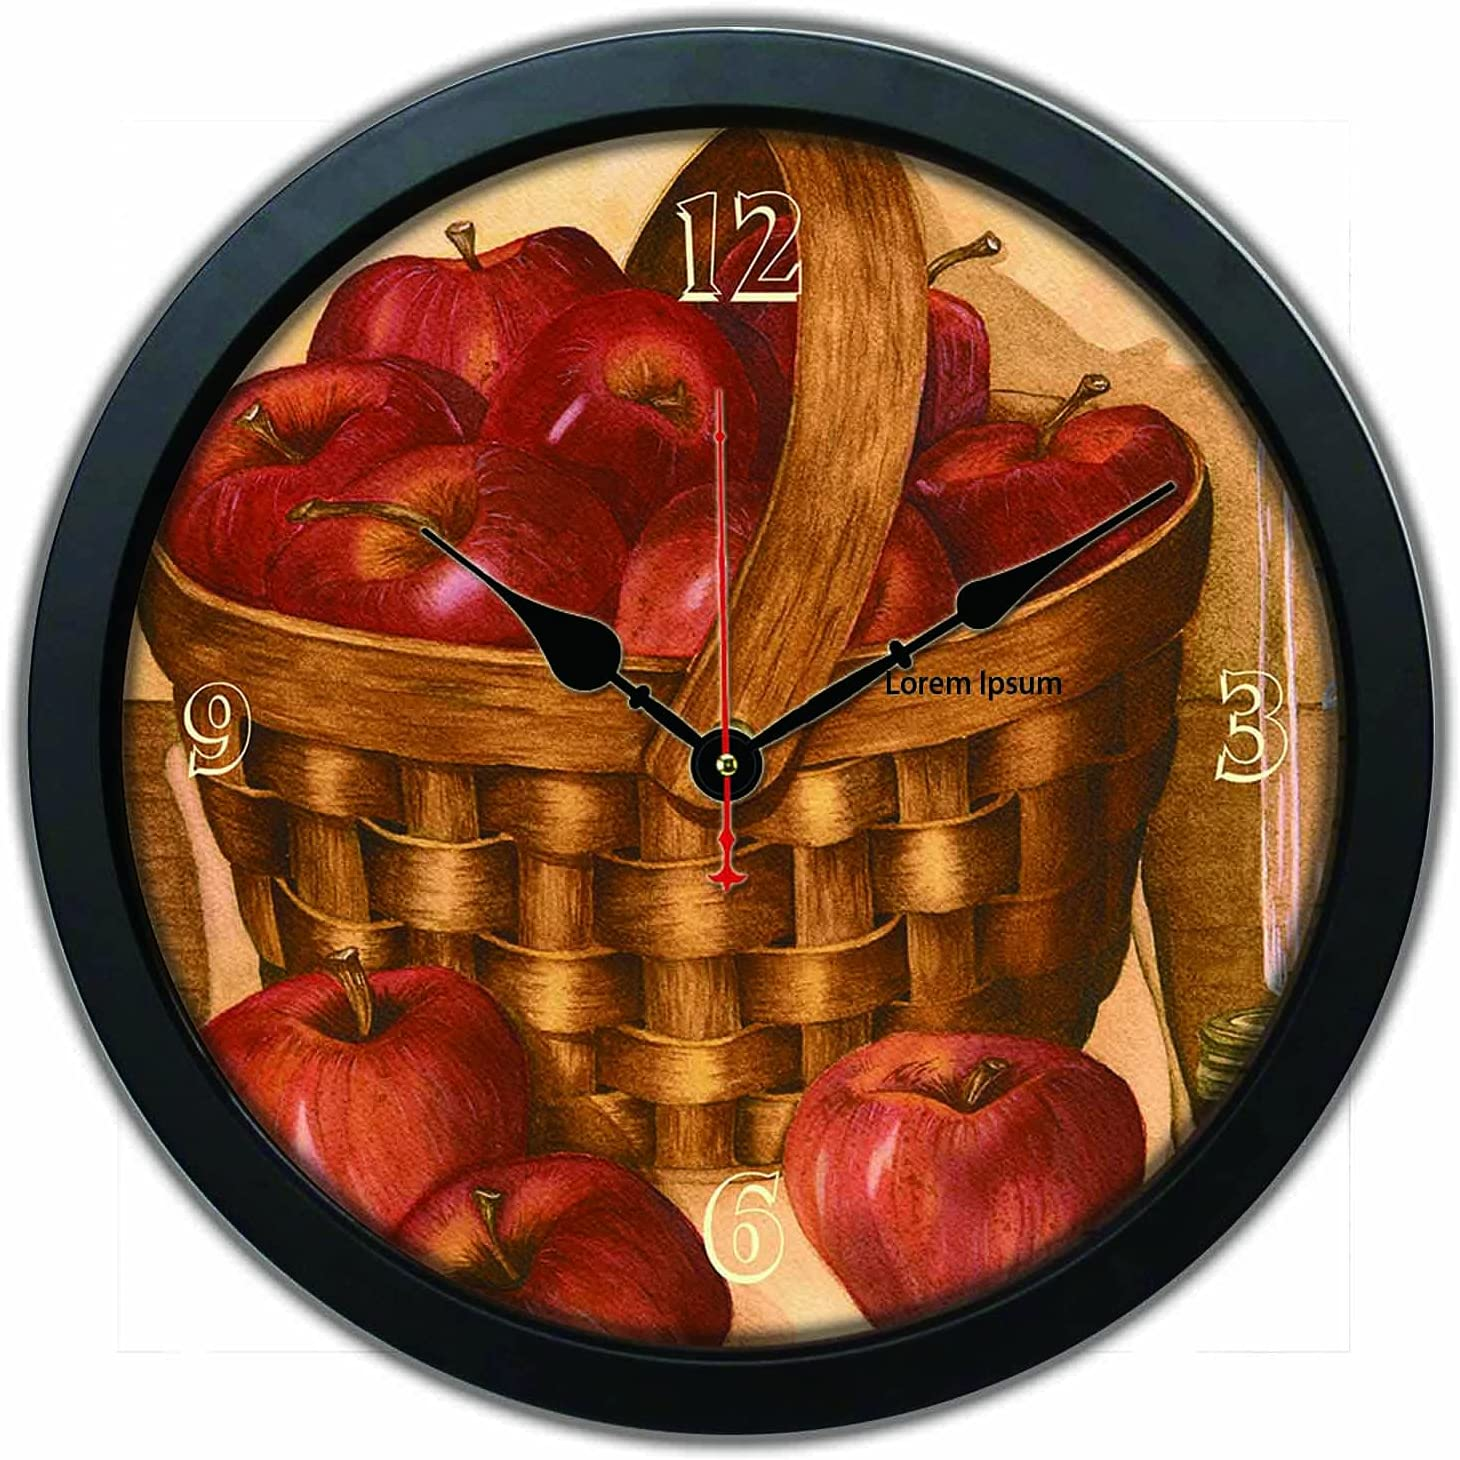 12 inch Round Frame Wall Clock Red Apple Silent Easy to Read for Home Office School Decor or Gifts